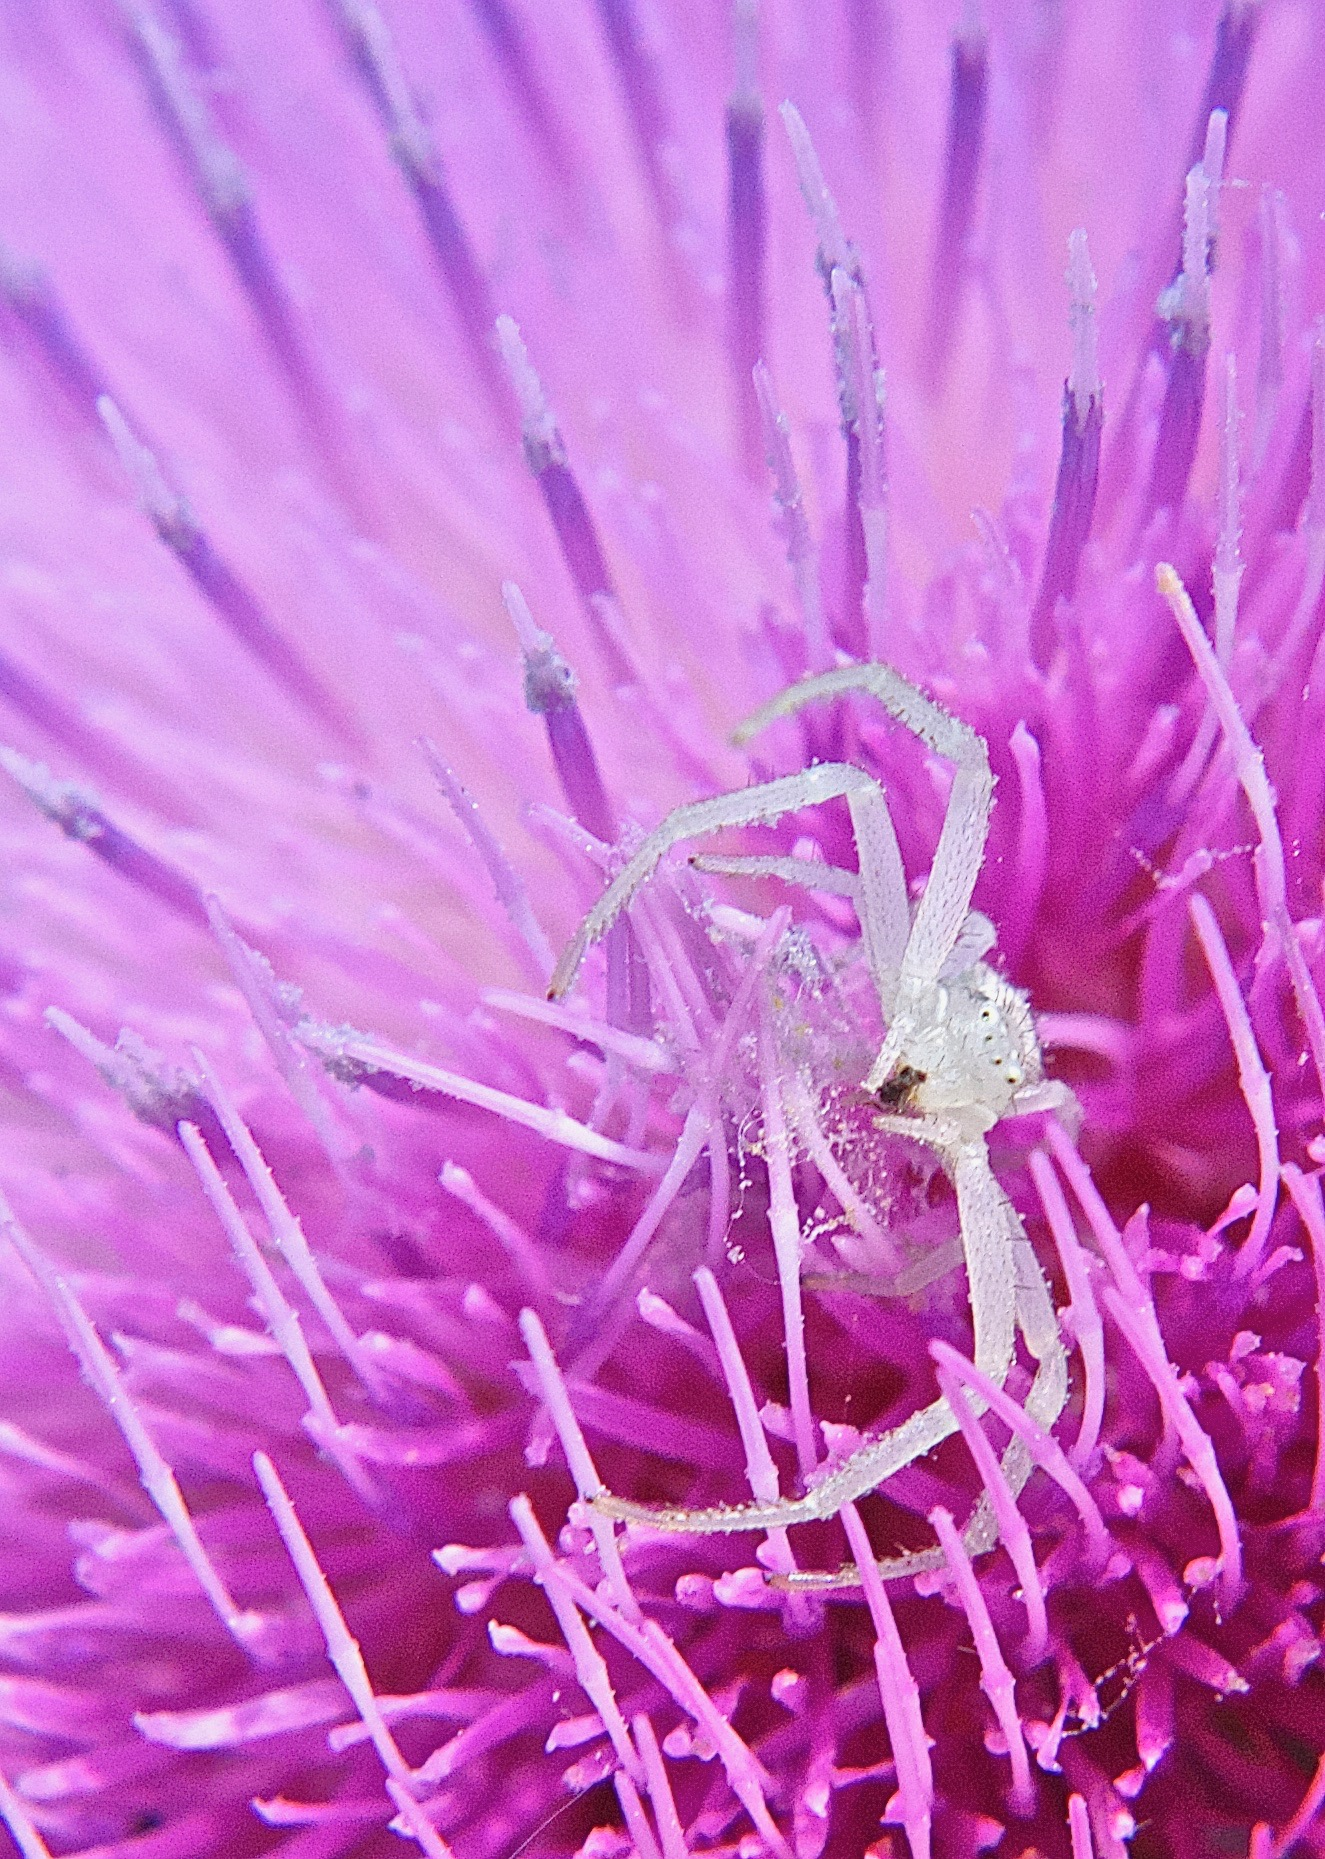 White Flower Spider on Musk Thistle